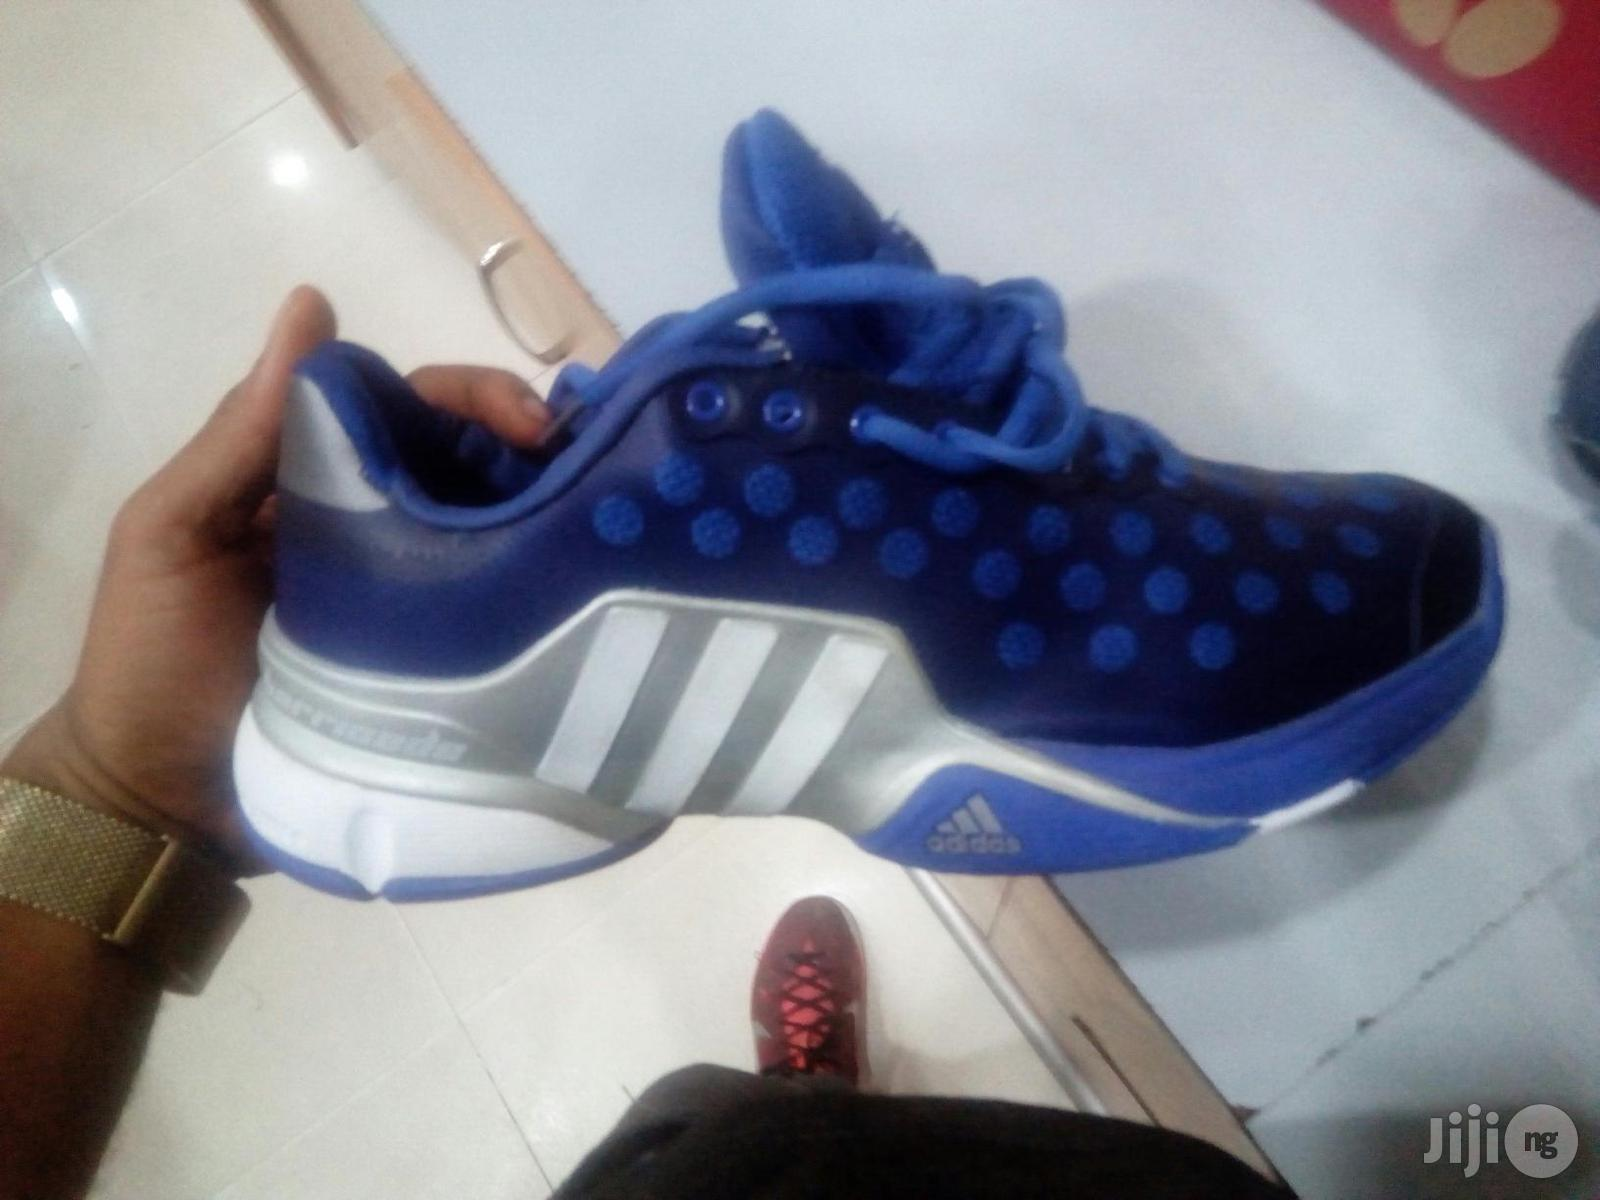 Tennis Canvas Adidas Tennis Shoes | Shoes for sale in Surulere, Lagos State, Nigeria